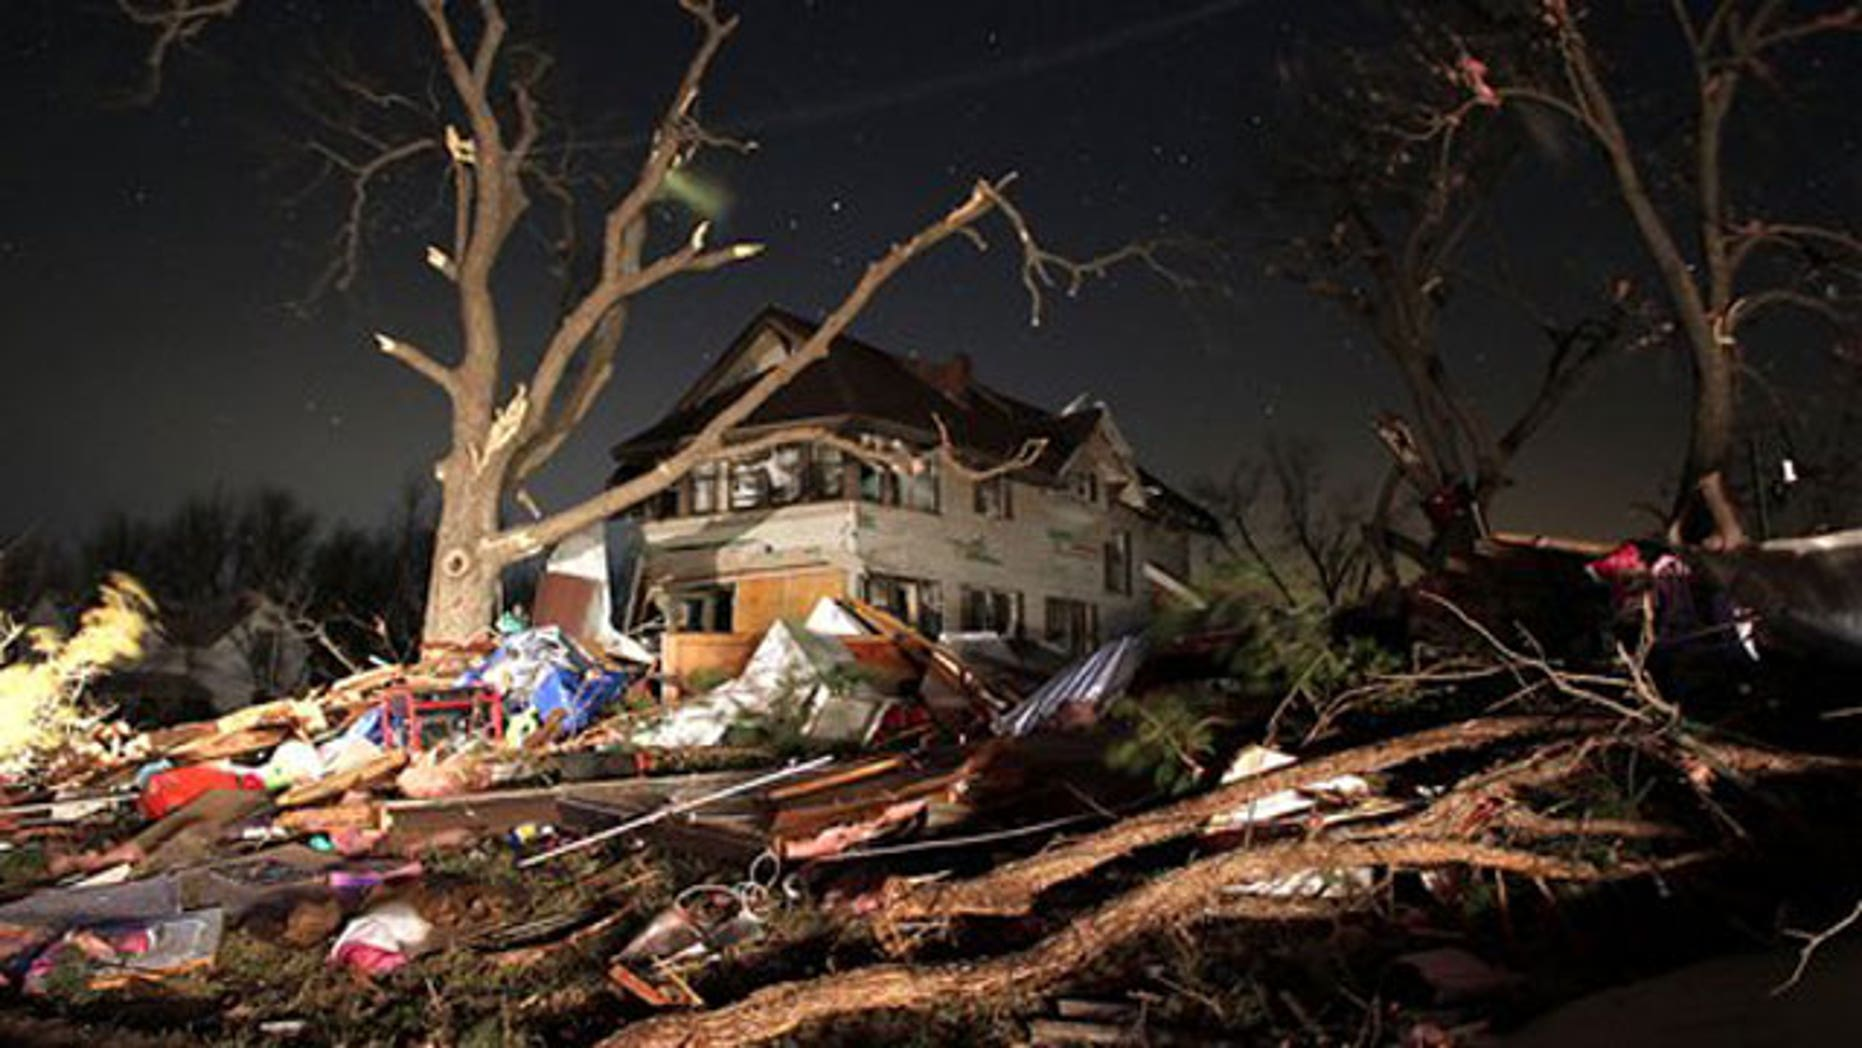 Feb. 29, 2012: Damage is seen in the town of Harveyville in Wabaunsee County Kansas after an apparent tornado passed through the town Tuesday night. Kansas Gov. Sam Brownback declared a state of emergency late Tuesday after an apparent tornado struck Harveyville, part of a powerful storm system that pounded the state's midsection.